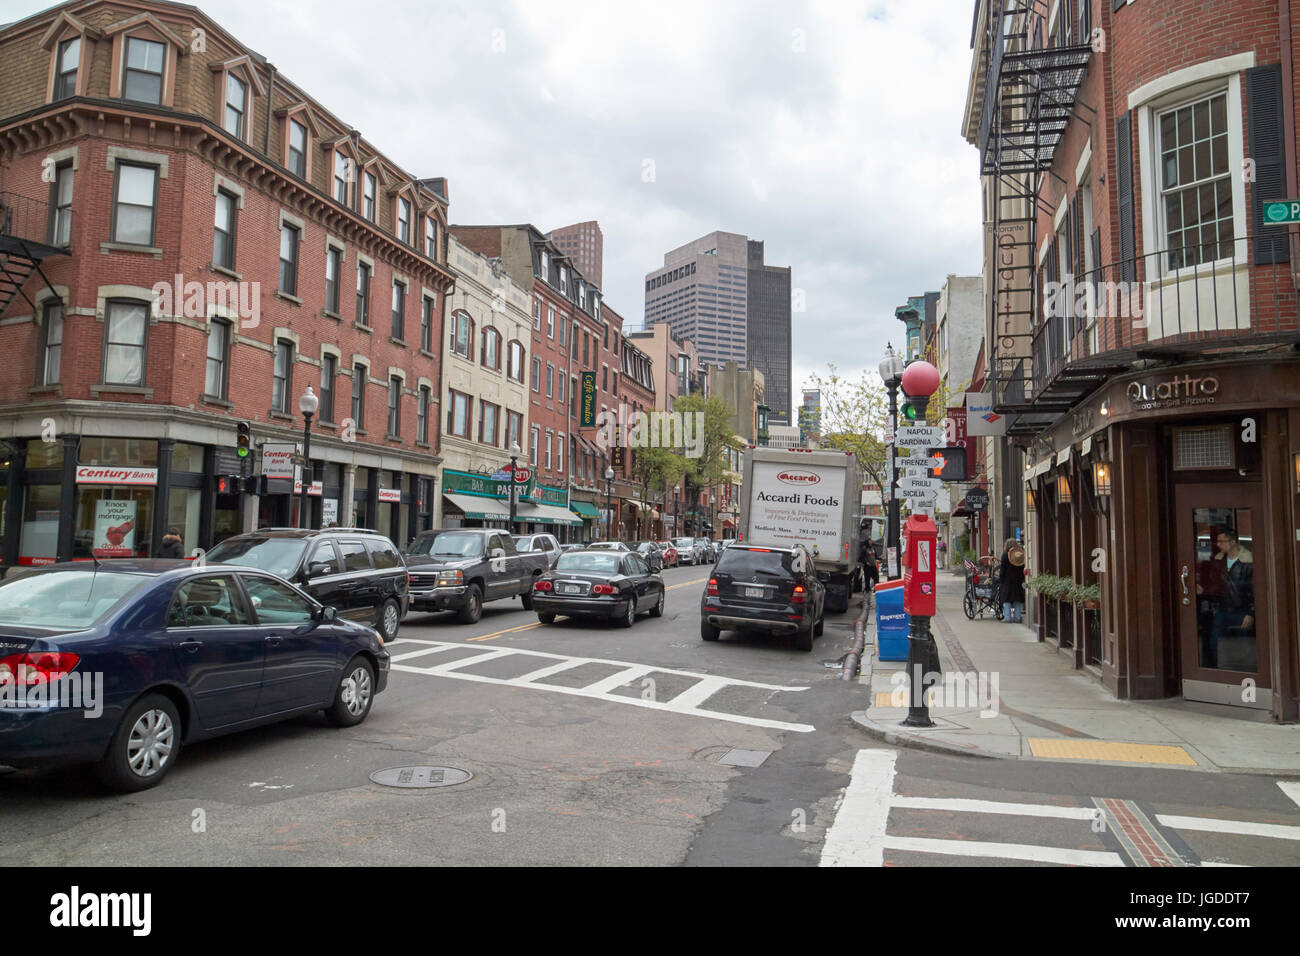 Hanover street italian restaurants north end Boston USA - Stock Image